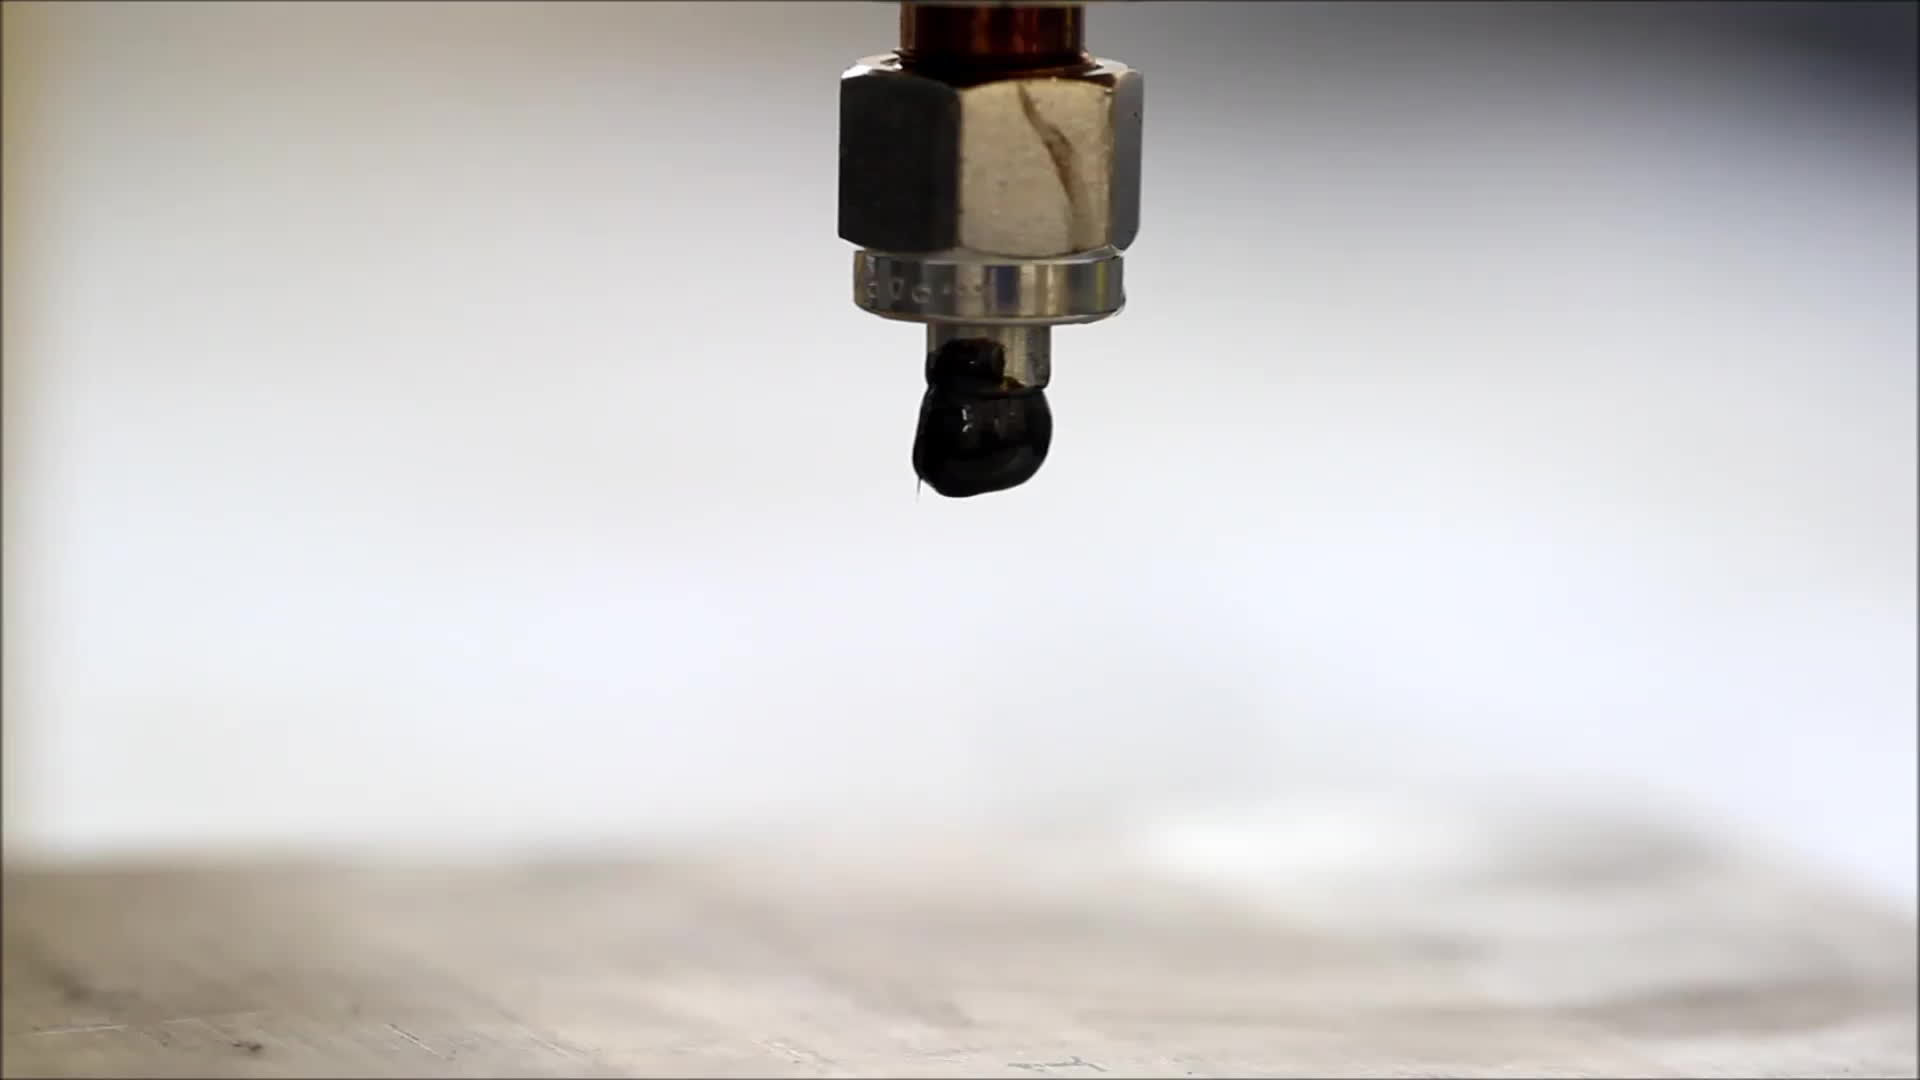 3dprinting, Watching is therapeutic, 3d printing a poop pile- 800% speed GIFs